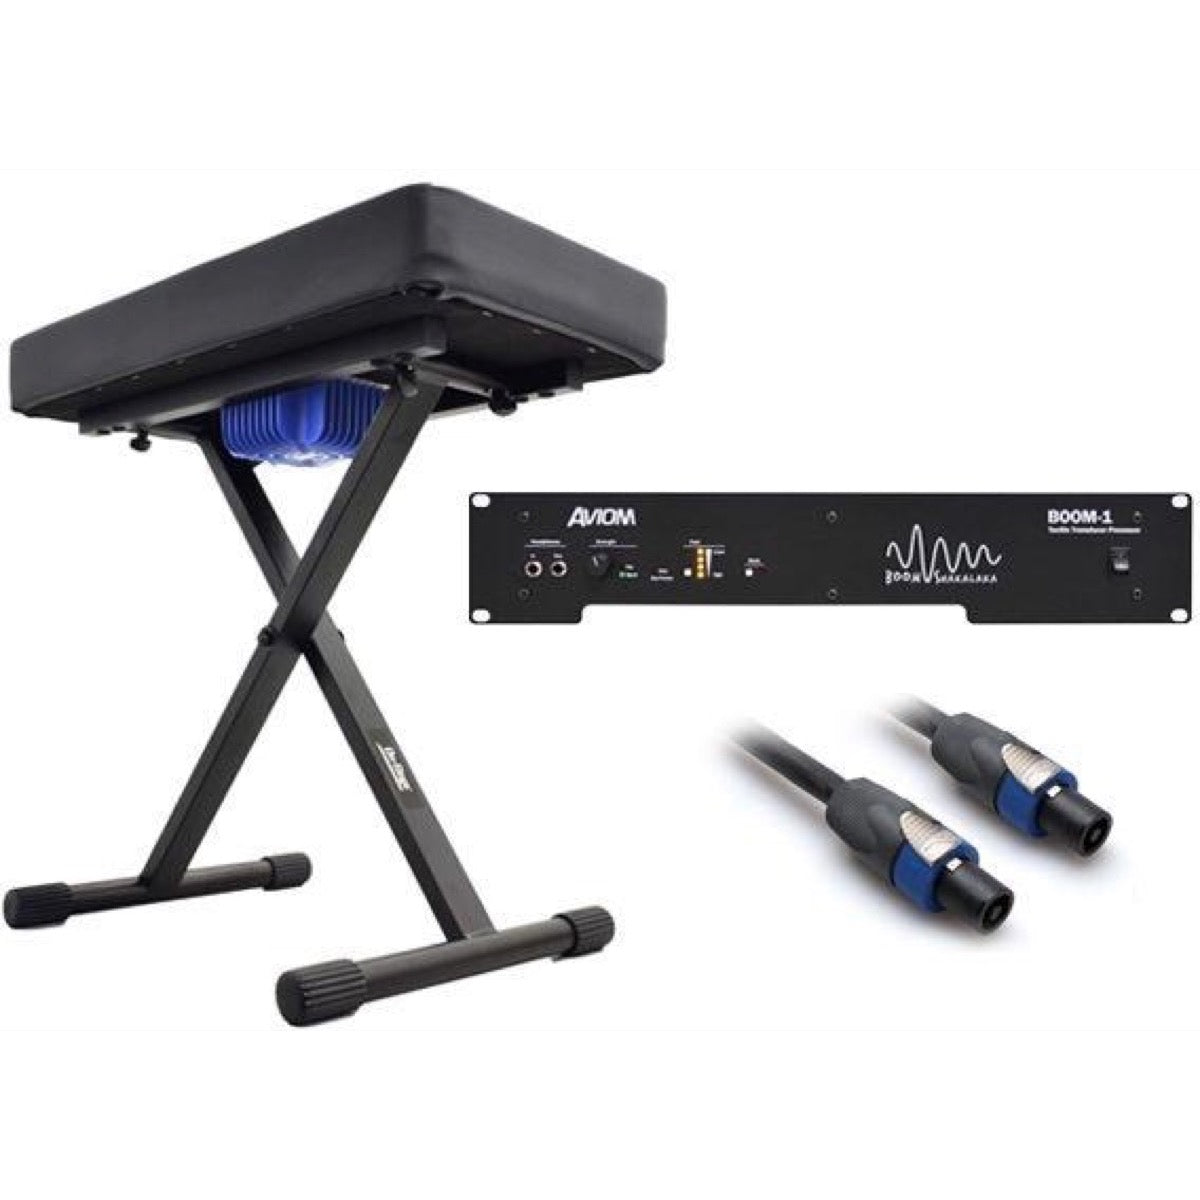 Aviom KBS-1 Keyboard Bench with Tactile Transducer, with Aviom BOOM-1 Tactile Transducer Processor Amp